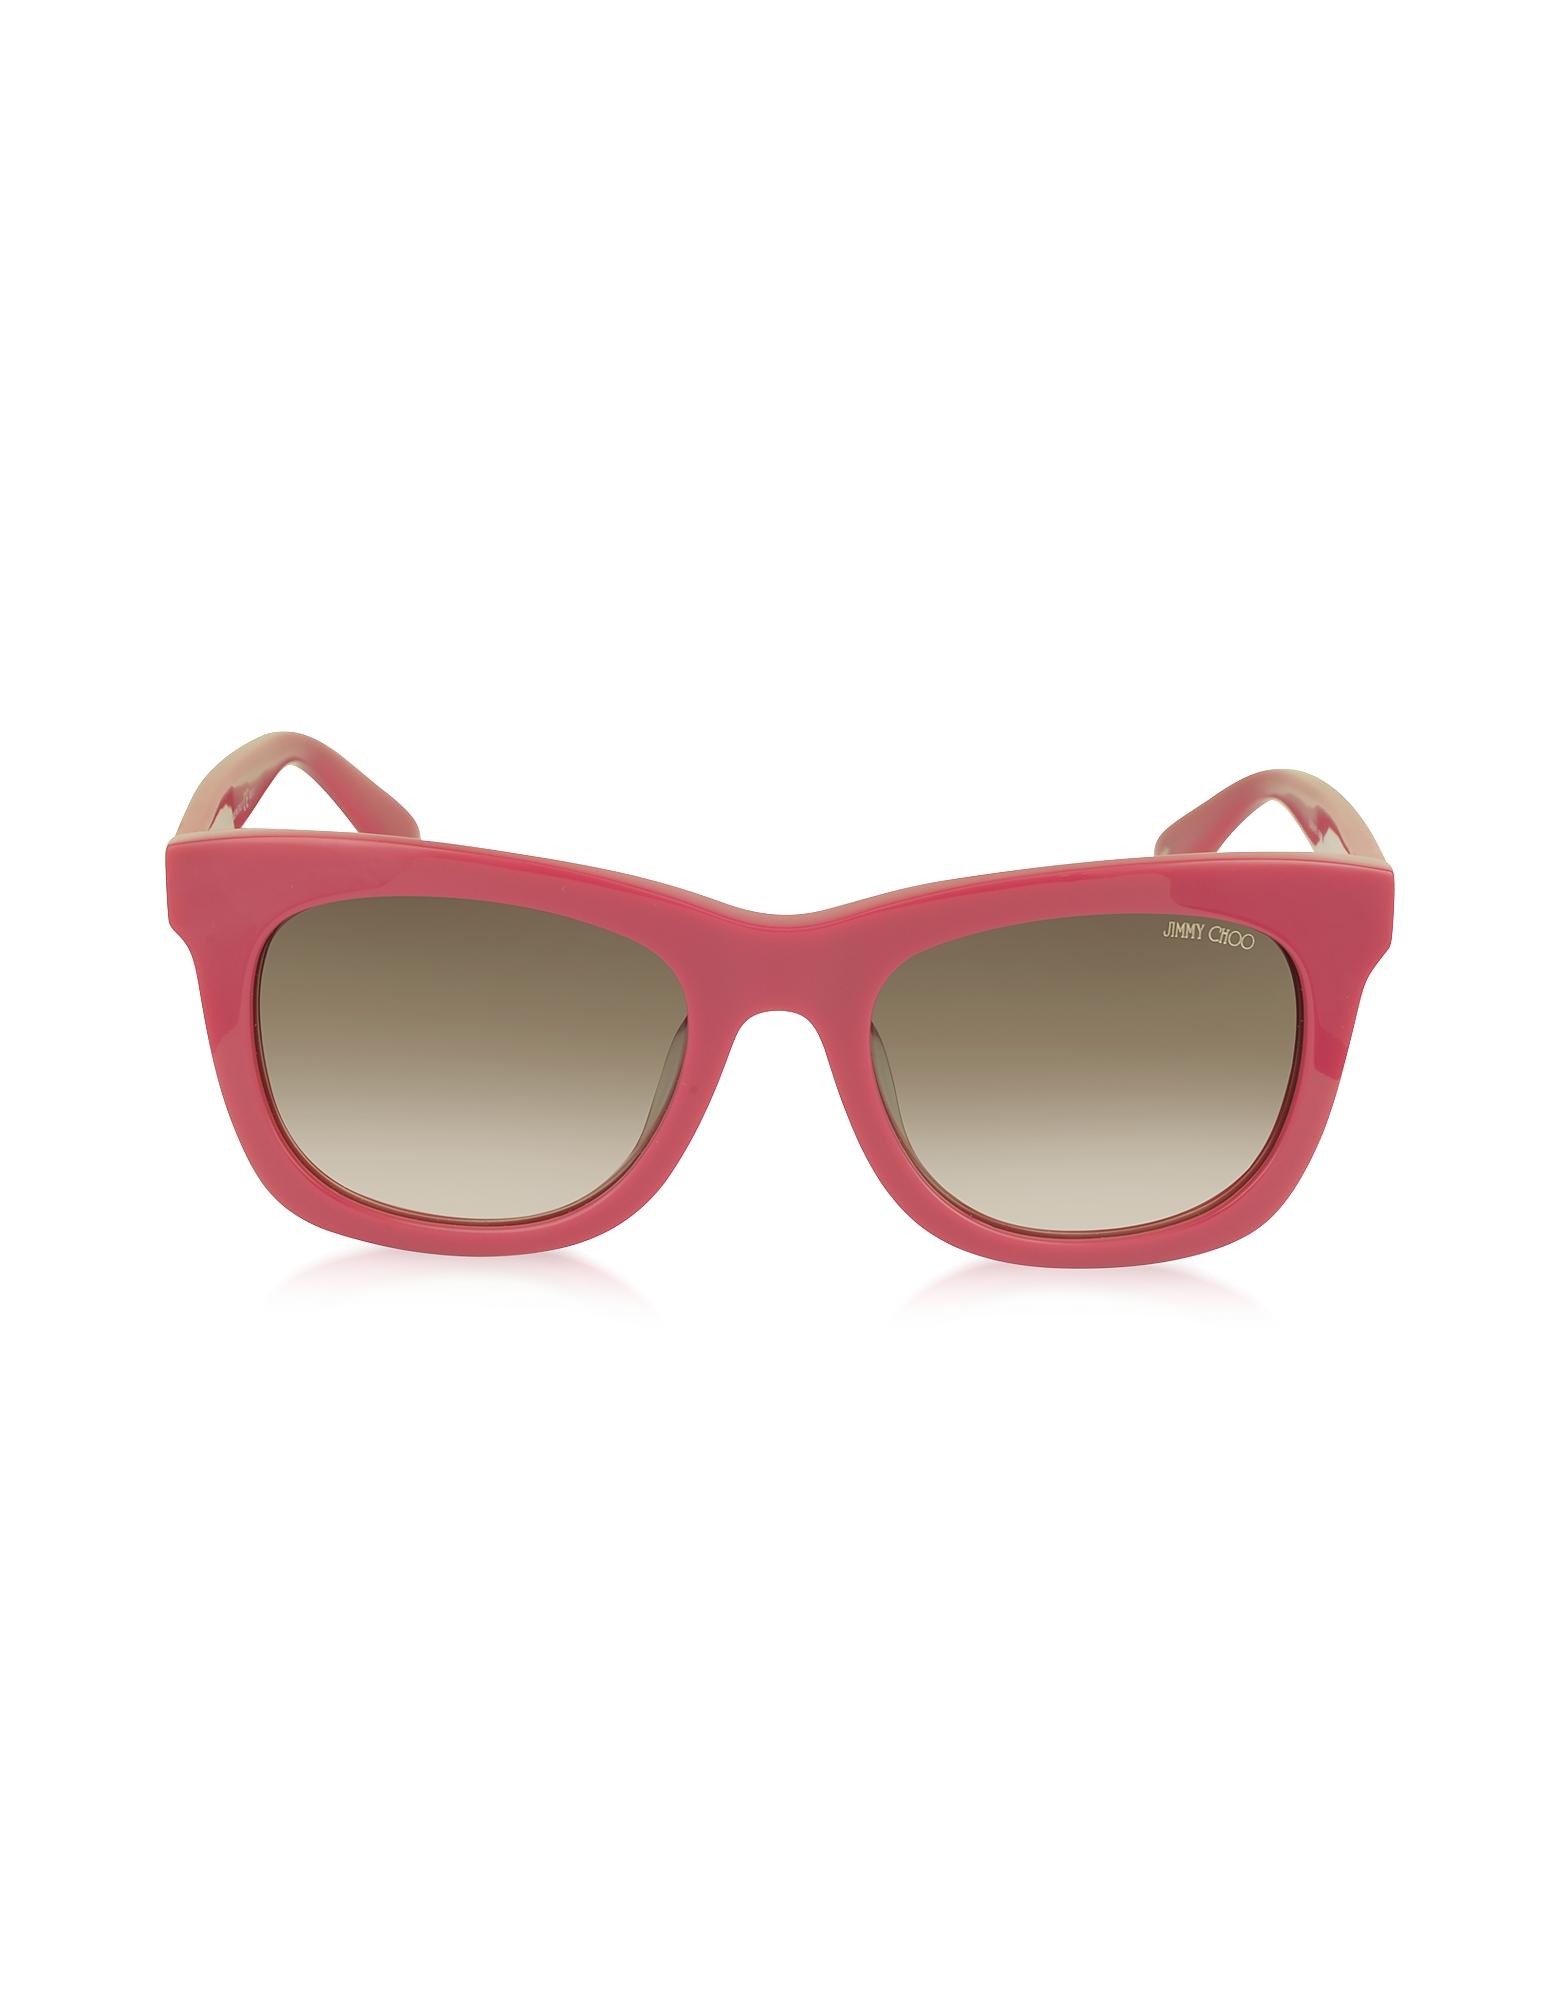 Jimmy Choo Designer Sunglasses, SASHA / S 8V0K8 Fuchsia Acetate Square Frame Sunglasses with Silver Stars